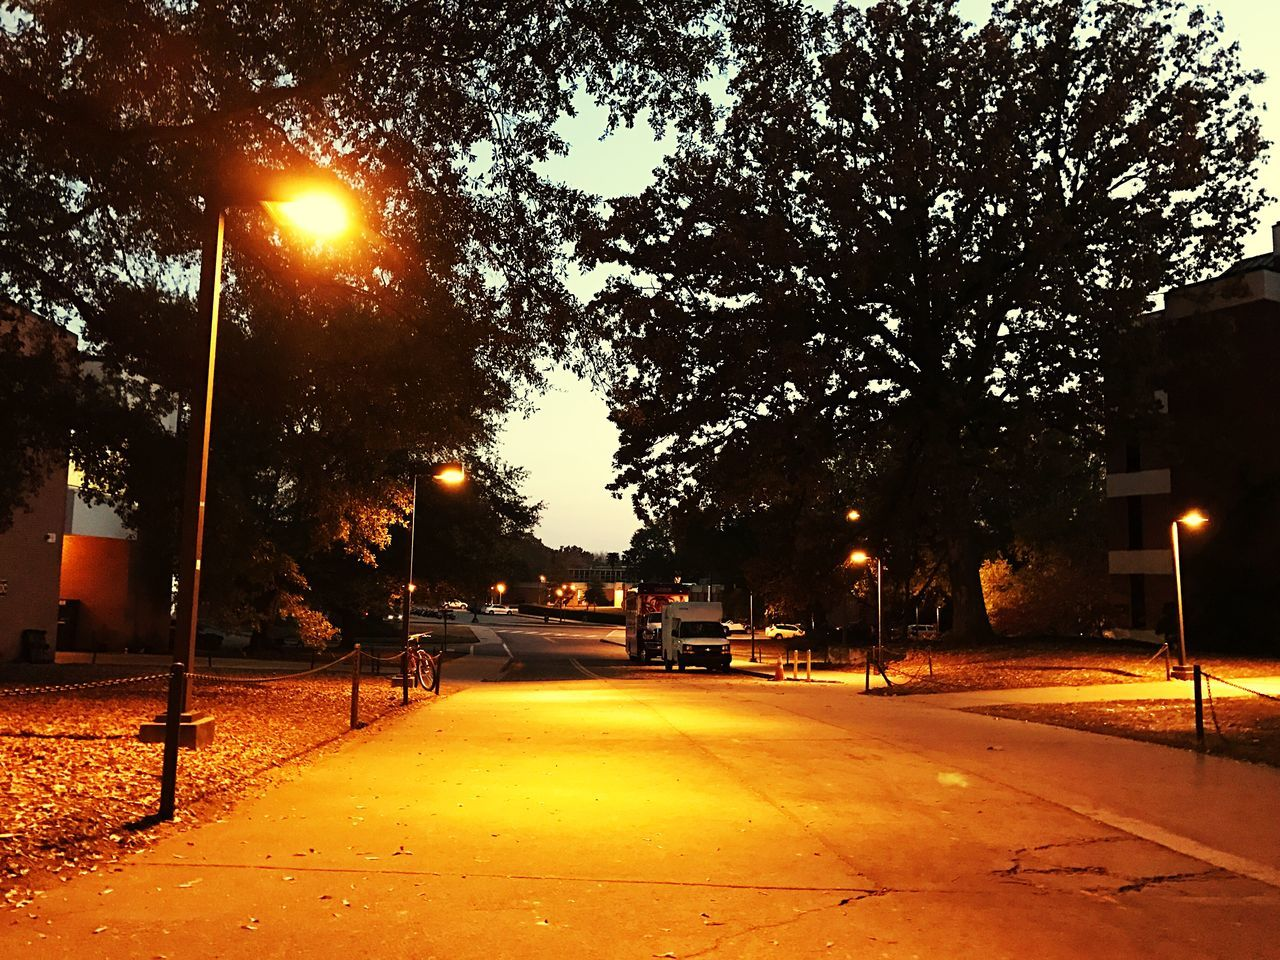 street light, illuminated, street, tree, outdoors, night, road, the way forward, no people, building exterior, city, sky, nature